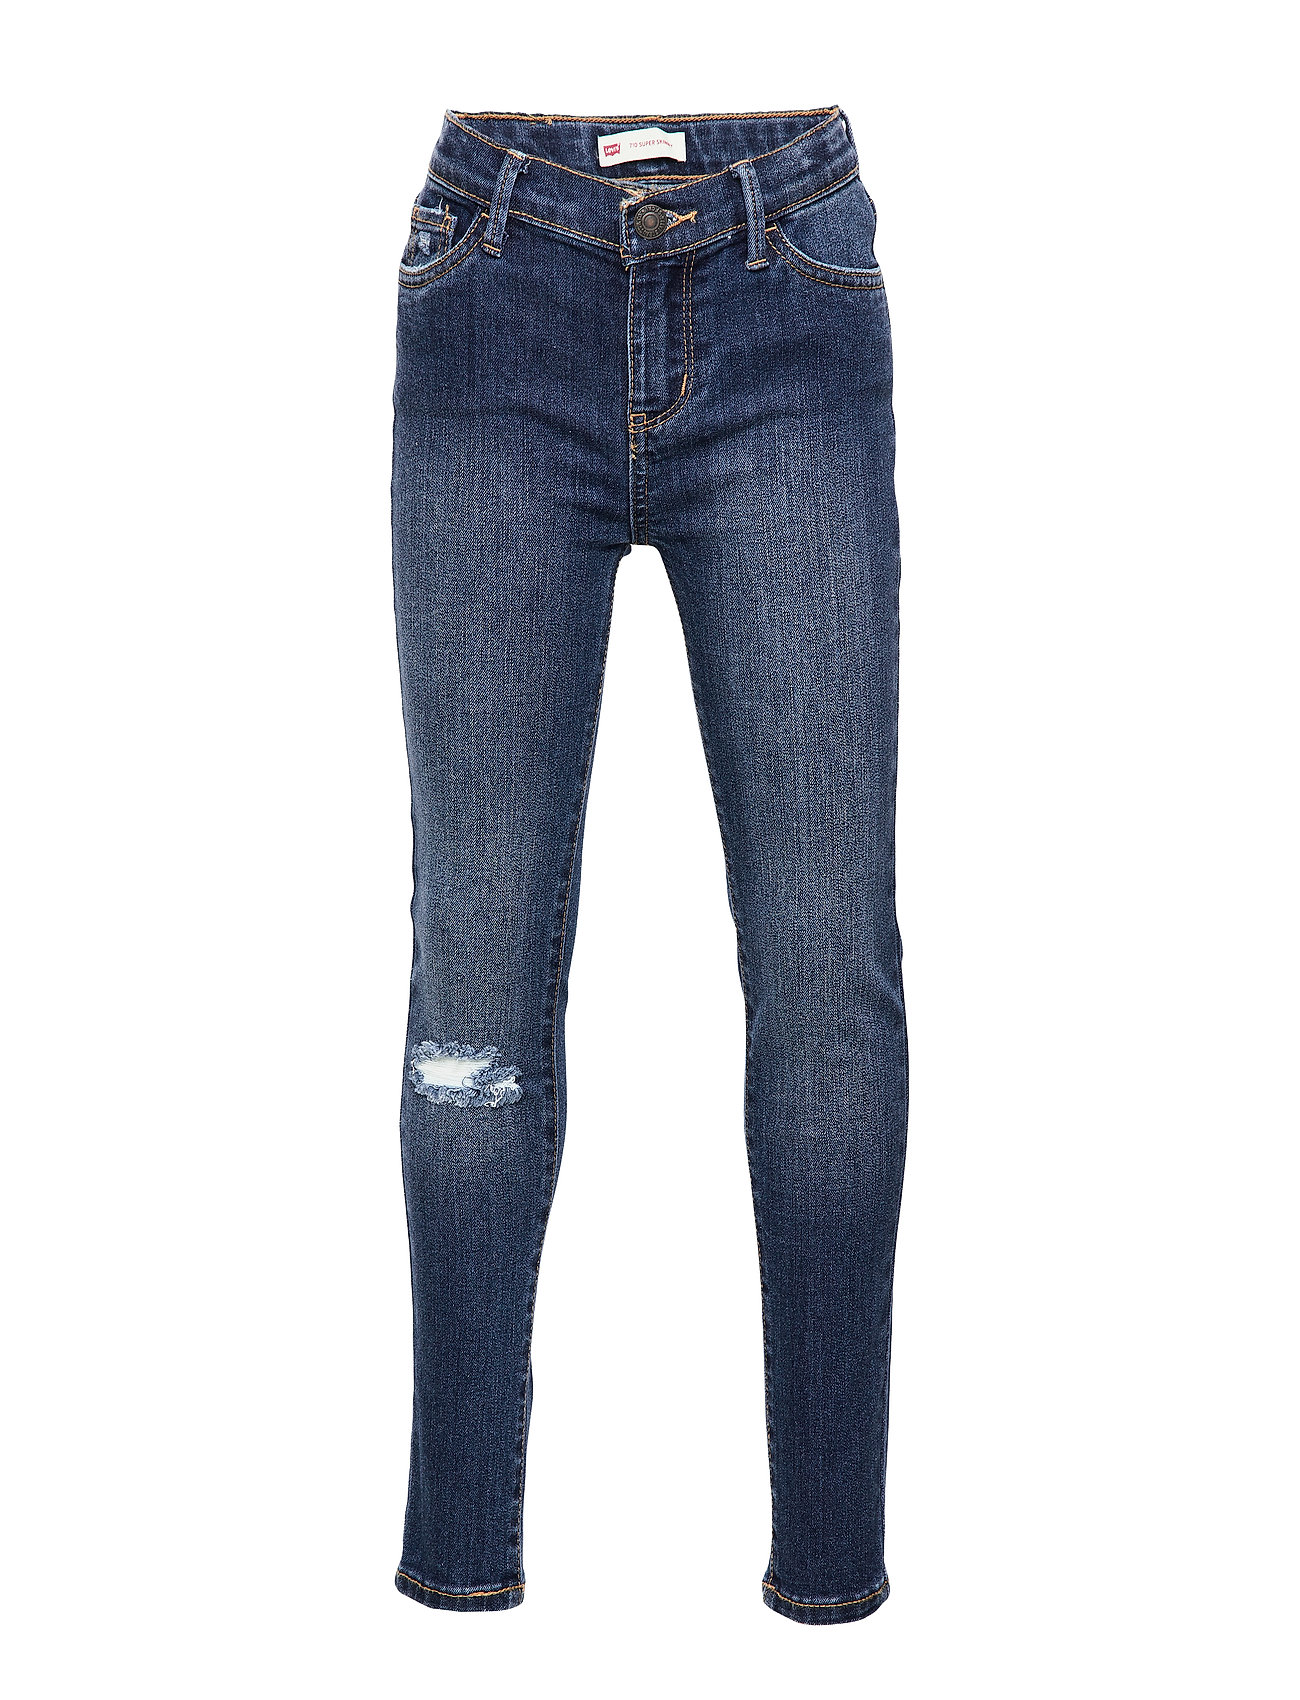 Levi's 710 Super Skinny - WEST THIRD